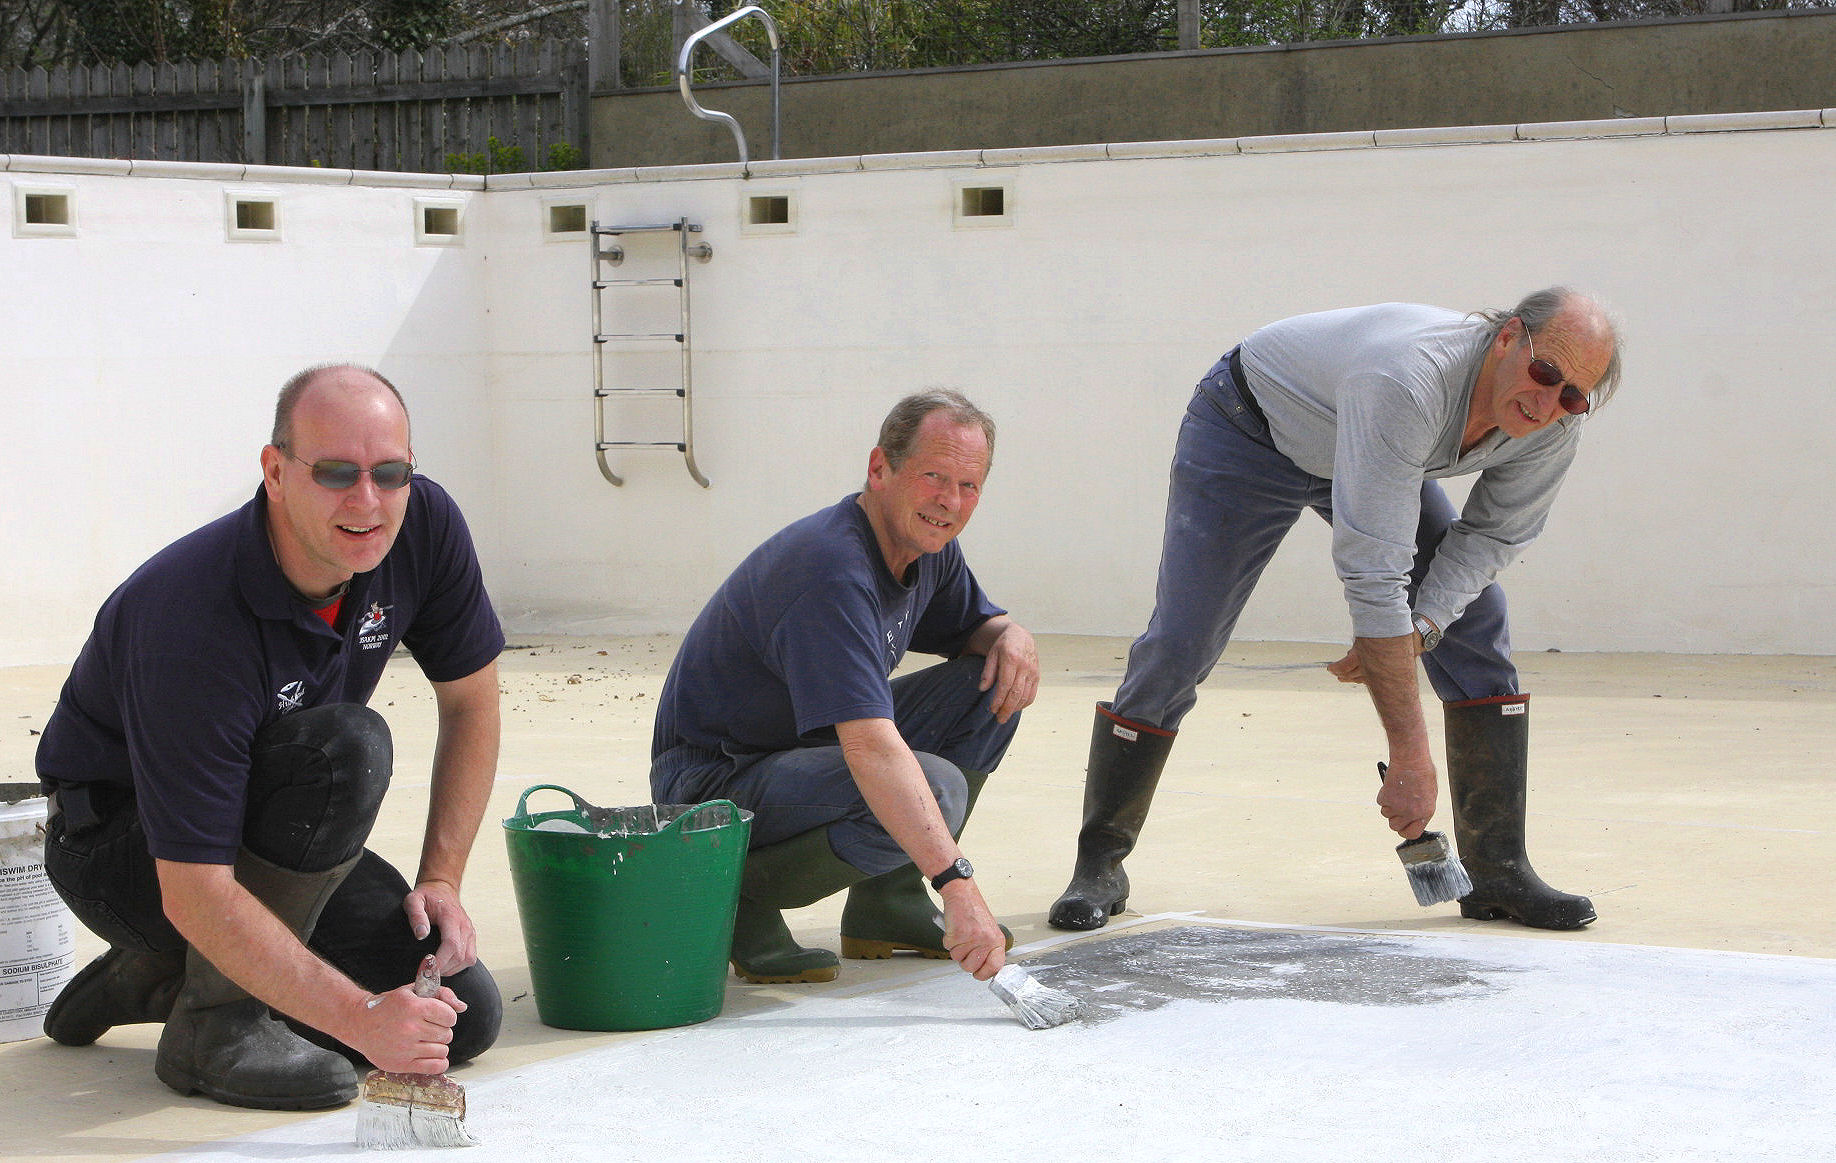 Painting the swimming pool 2008. Backbreaking work in the sun.